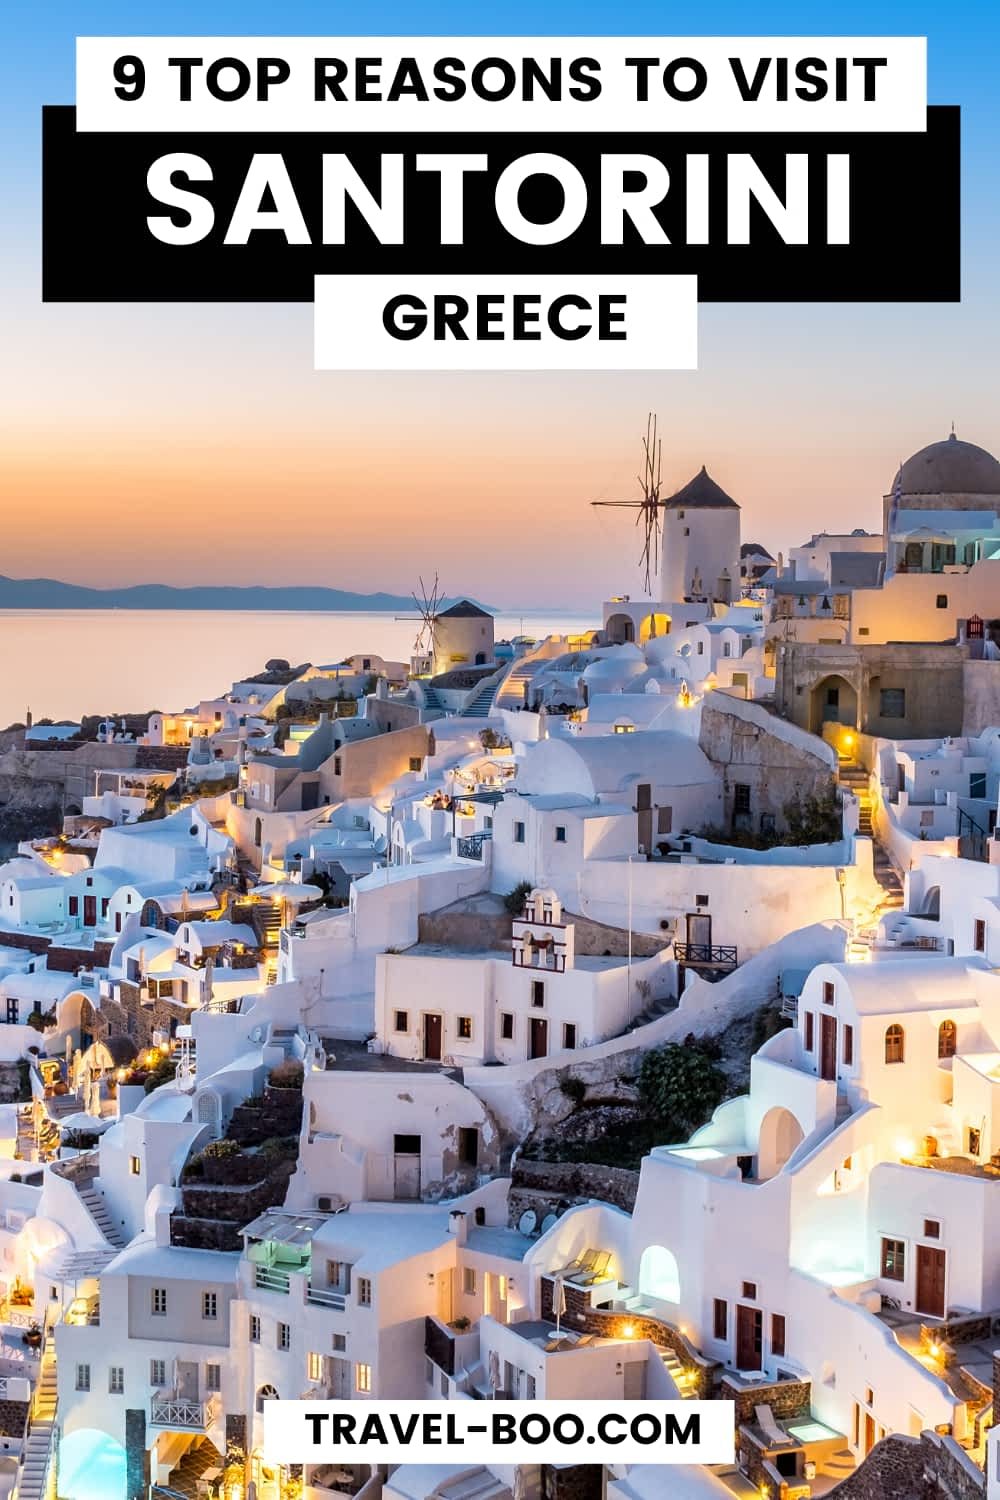 9 Top Reasons to visit Santorini Greece #greecetravel #greecetravelislands #santorini #santorinigreece | Greece Travel Islands | Greece Travel | Greece Travel Guide | Greece Travel Itinerary | Greece Travel Tips | Greece Travel Santorini